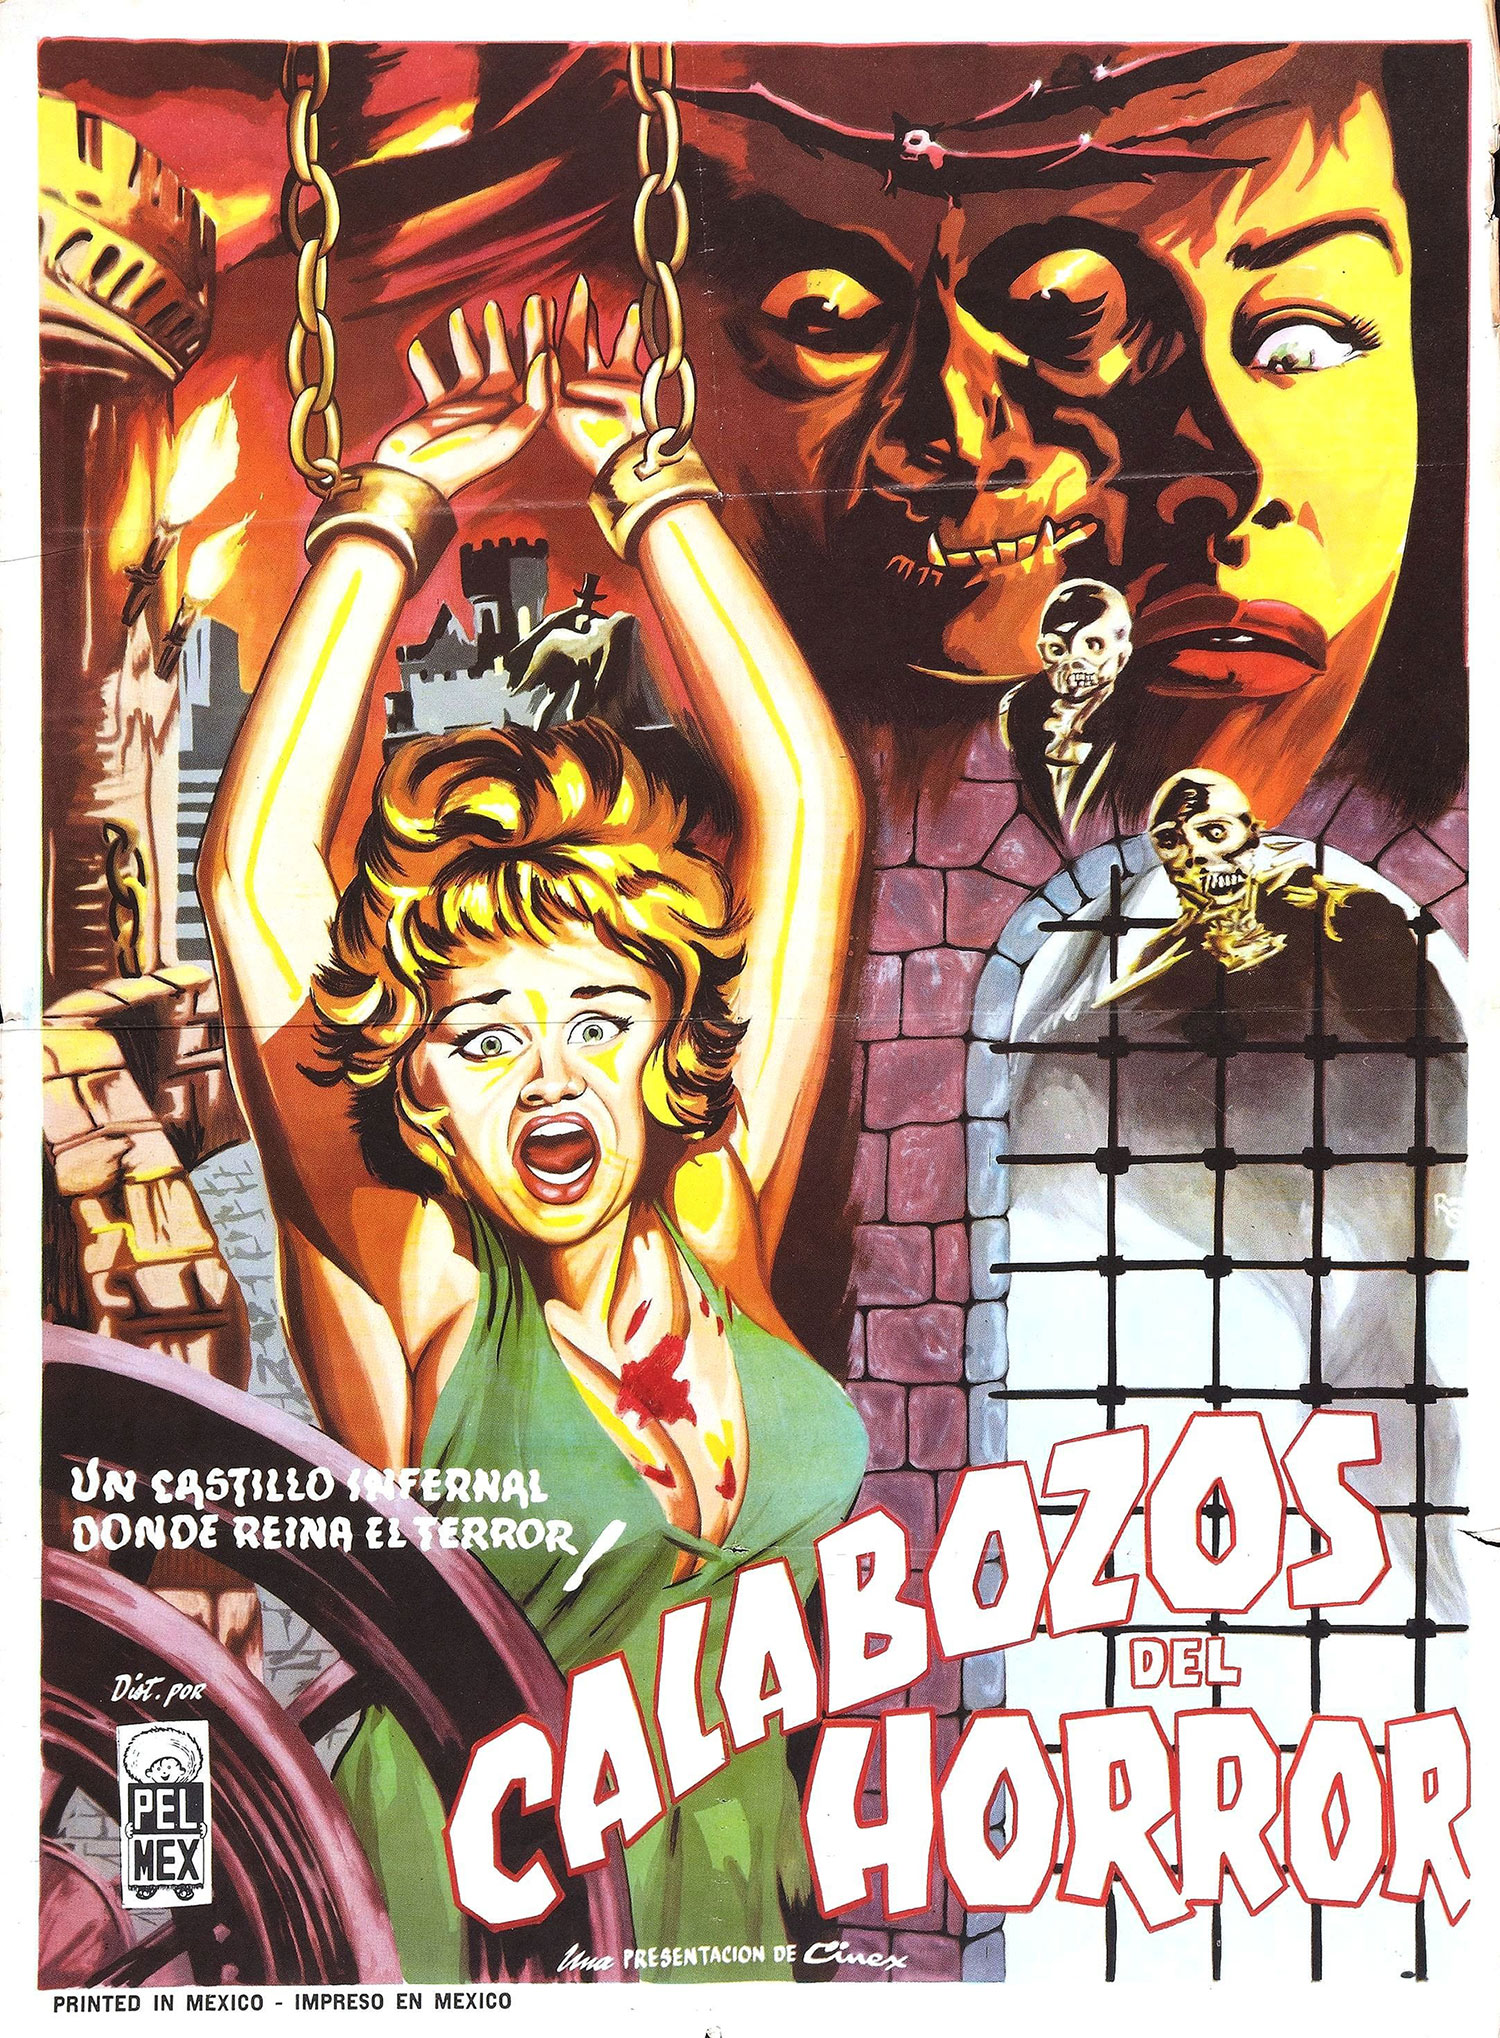 The Dungeon of Harrow movie poster from Mexico